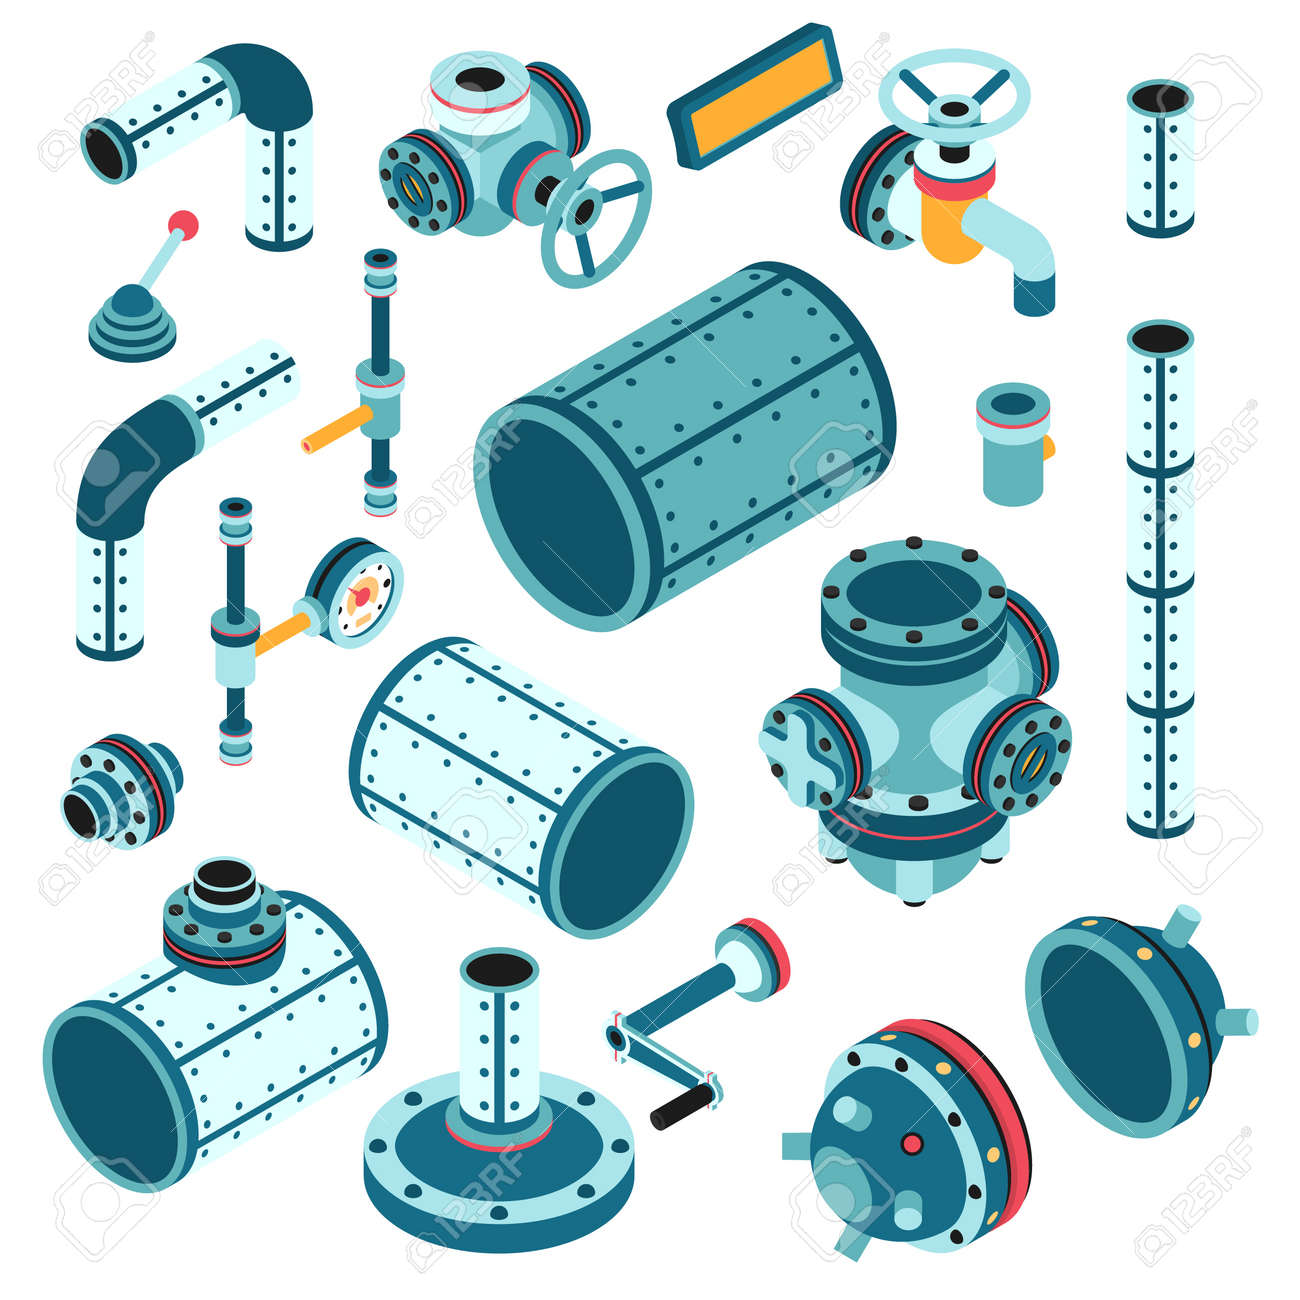 Industrial steampunk spare parts for assembling apparatus, machine - pipe, flange, fitting, body, valve, splitter, lever, handle and so on. 3d isometric vector illustration. Stock Vector - 92805169